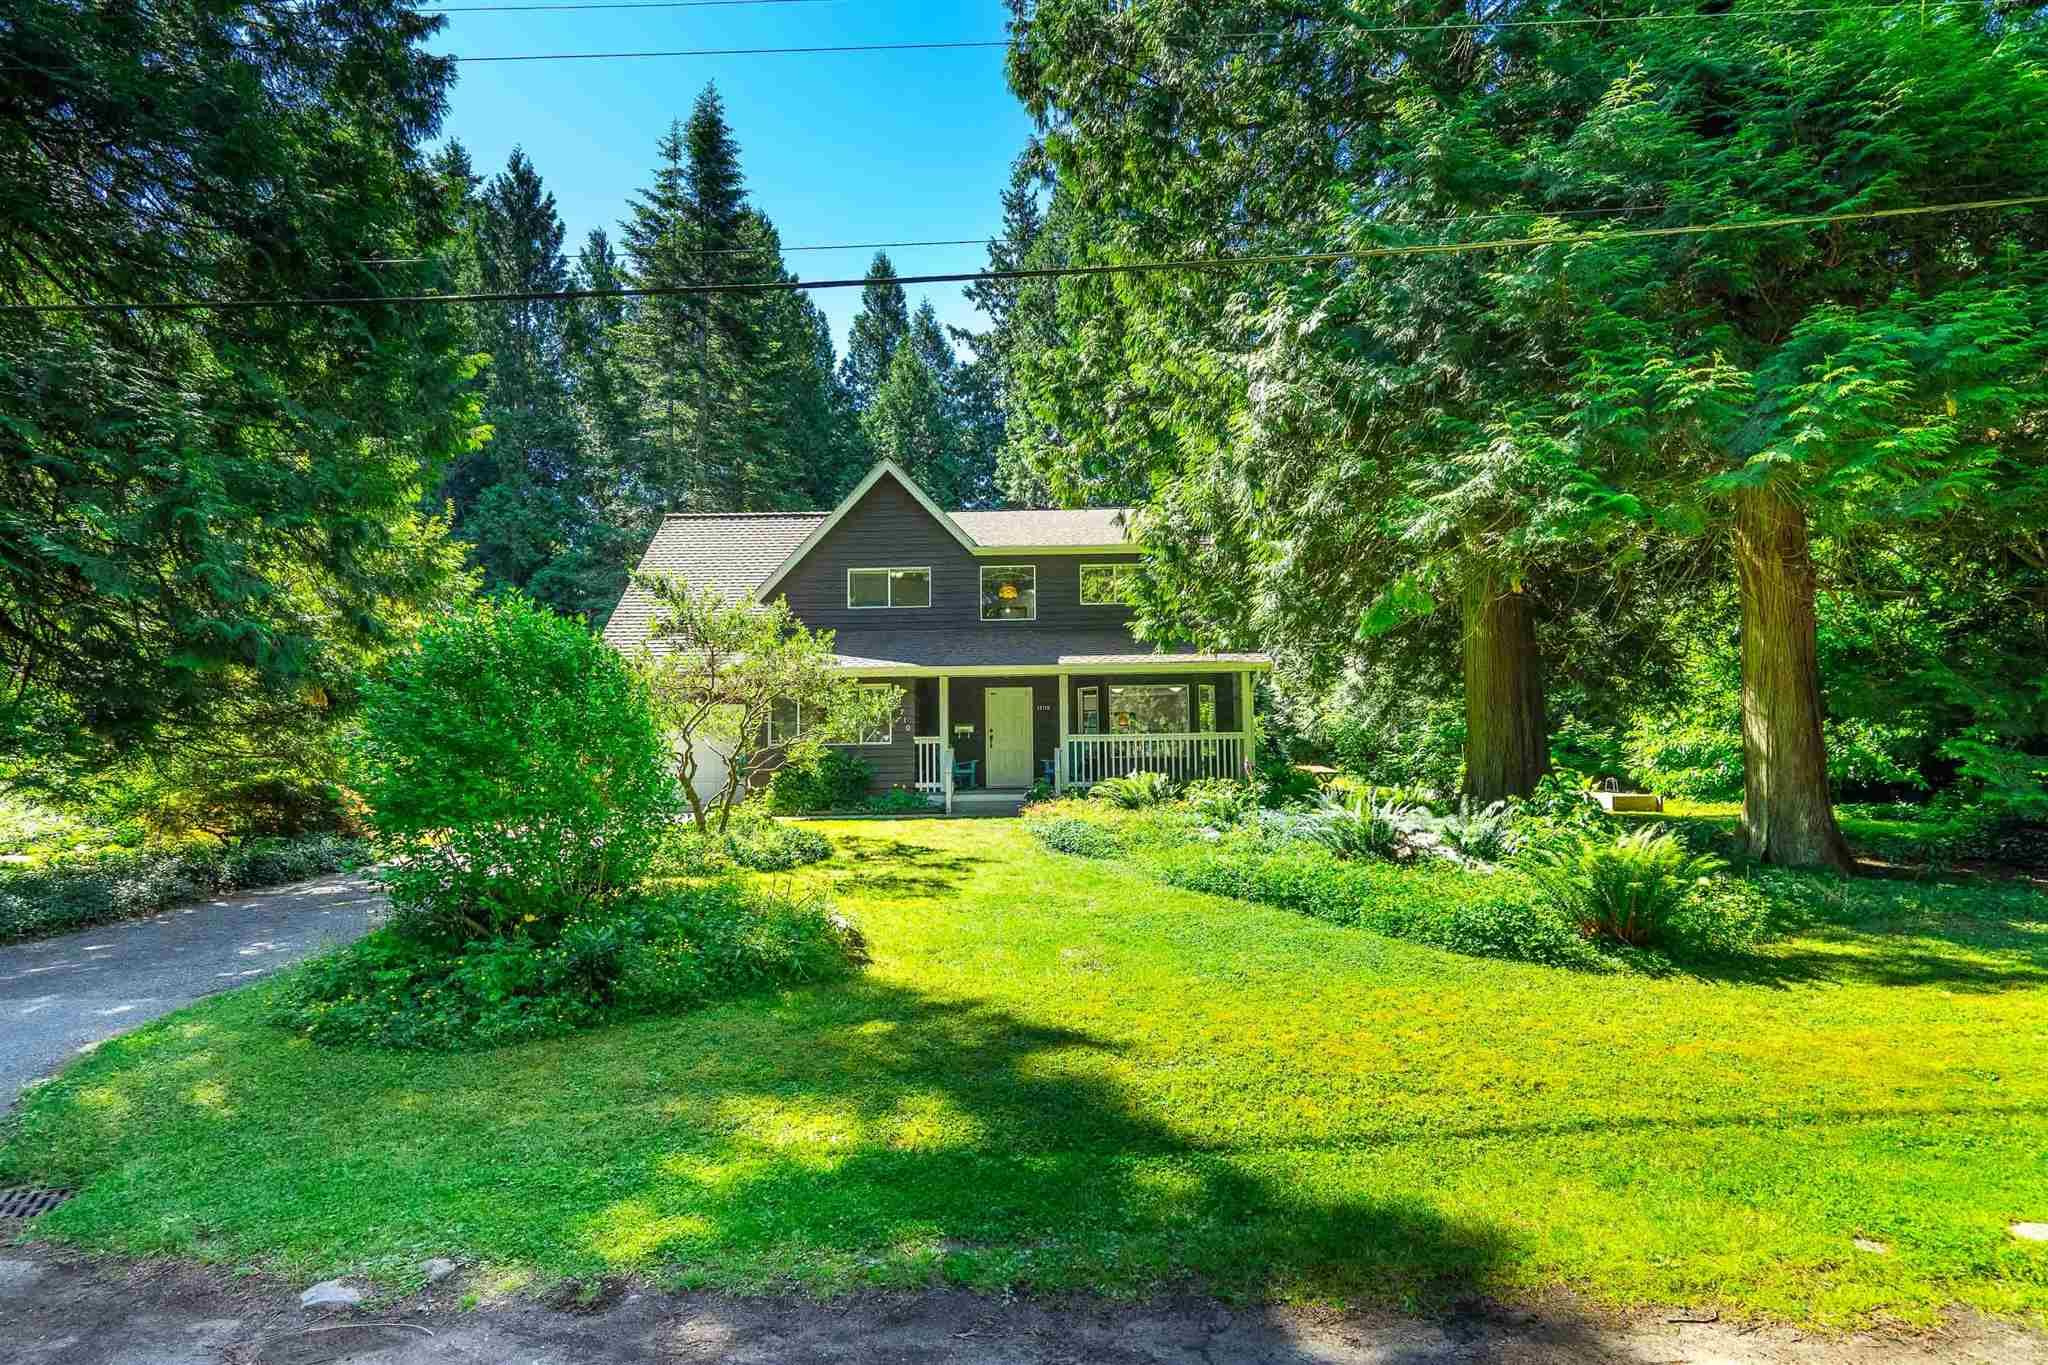 """Main Photo: 12710 BECKETT Road in Surrey: Crescent Bch Ocean Pk. House for sale in """"Crescent Beach"""" (South Surrey White Rock)  : MLS®# R2595468"""